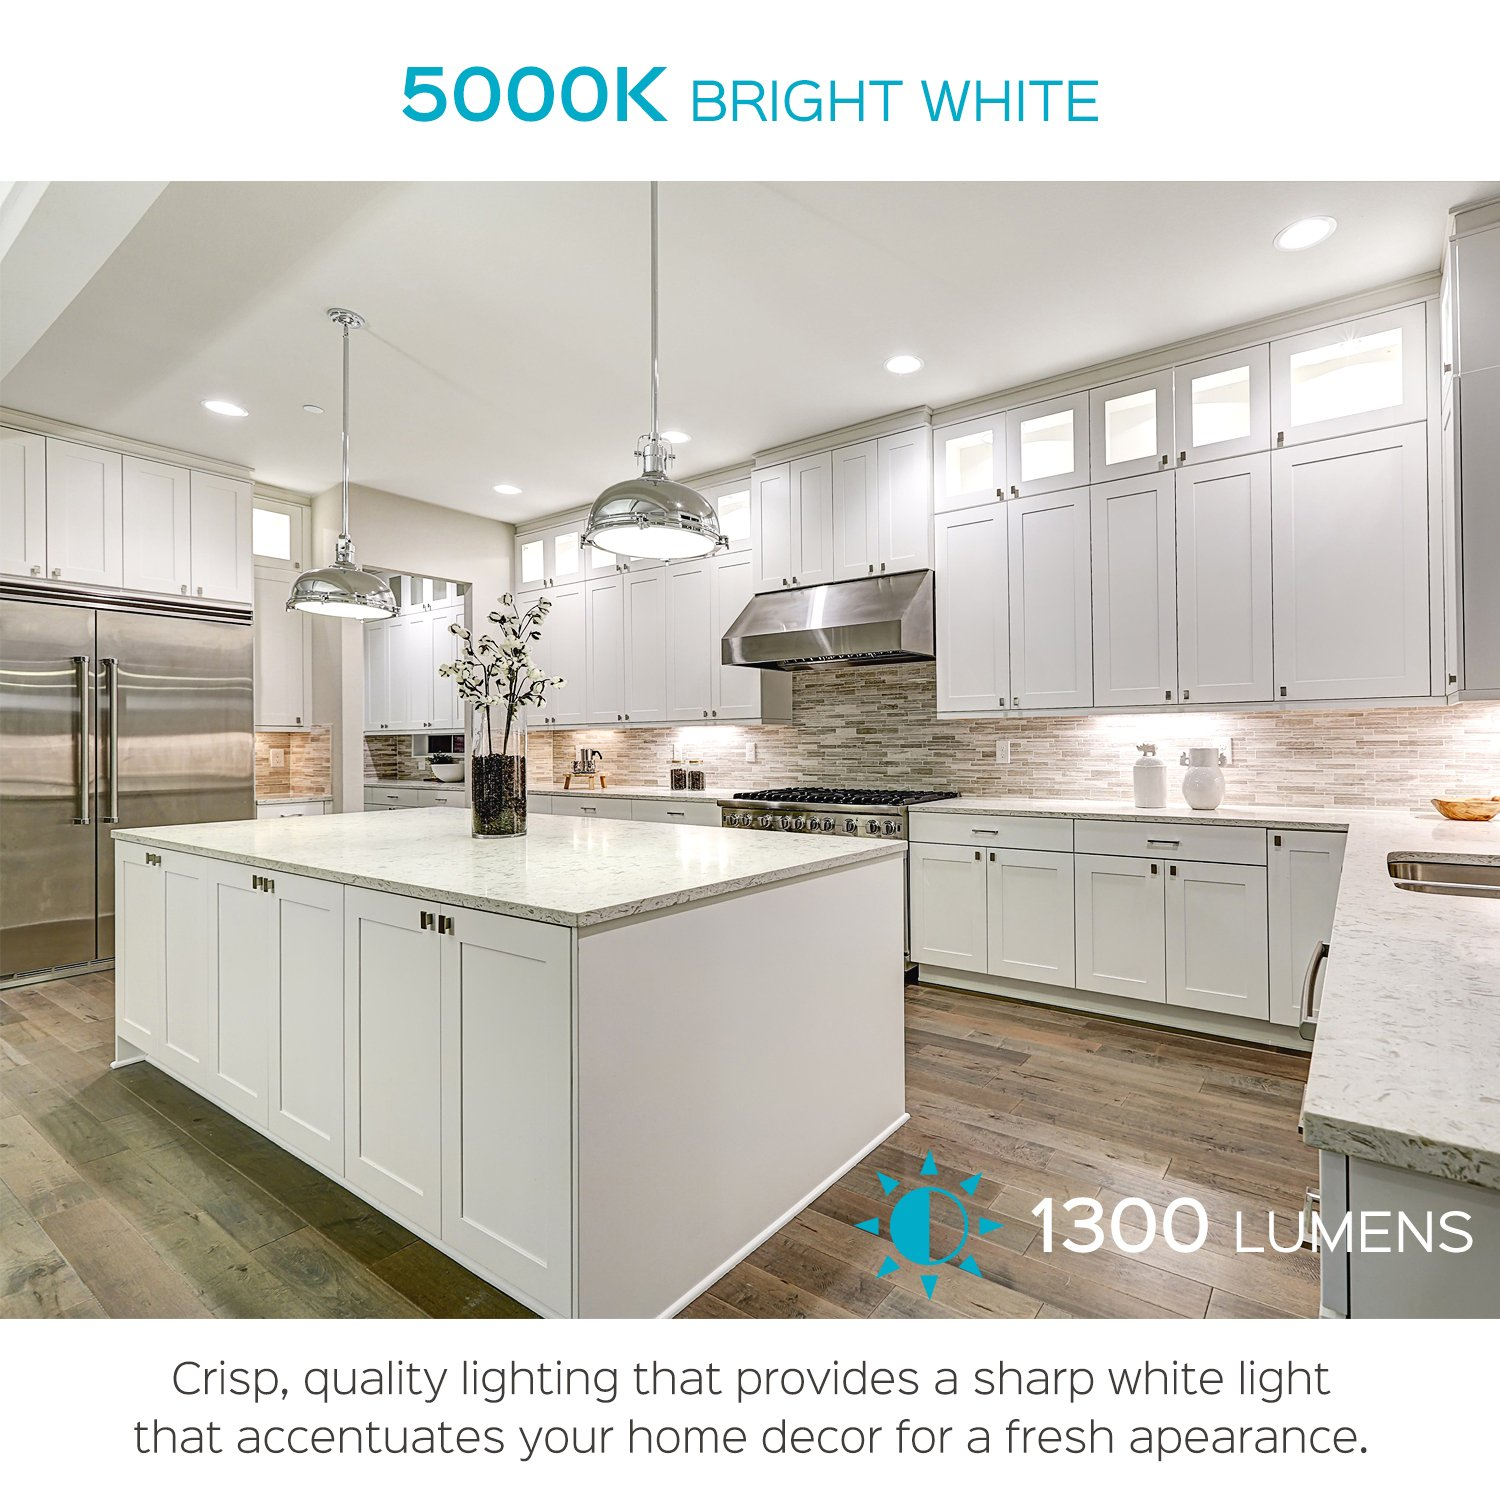 Luxrite 5/6 Inch LED Recessed Light, 15W (120W Equivalent), 5000K Bright White, 1300lm, Dimmable, Retrofit LED Can Light, Energy Star & UL, Damp Rated - Perfect for Kitchen, Bathroom, Office (4 Pack) by Luxrite (Image #4)